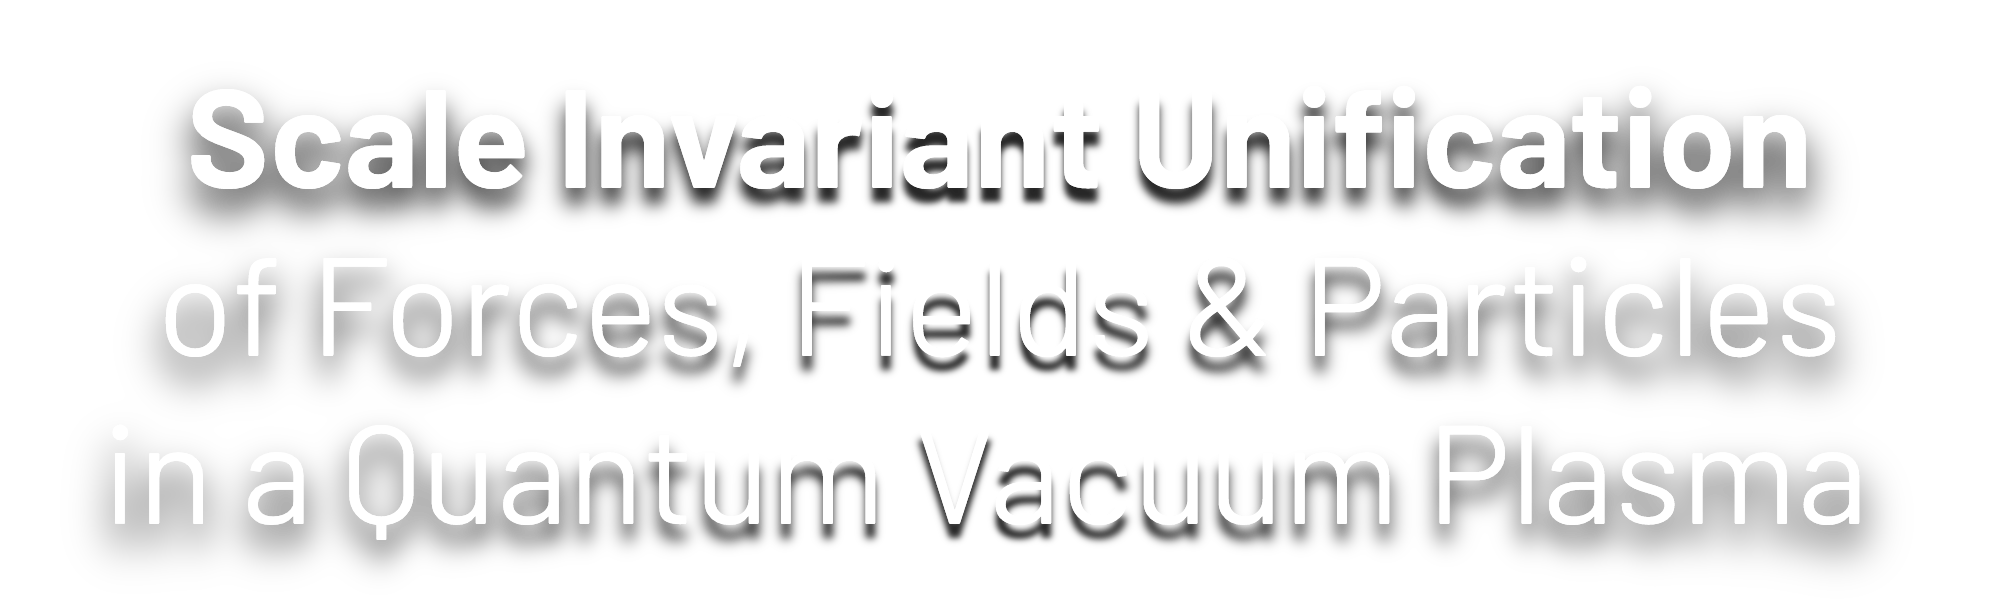 Scale Invariant Unification of Forces, Fields & Particles in a Quantum Vacuum Plasma